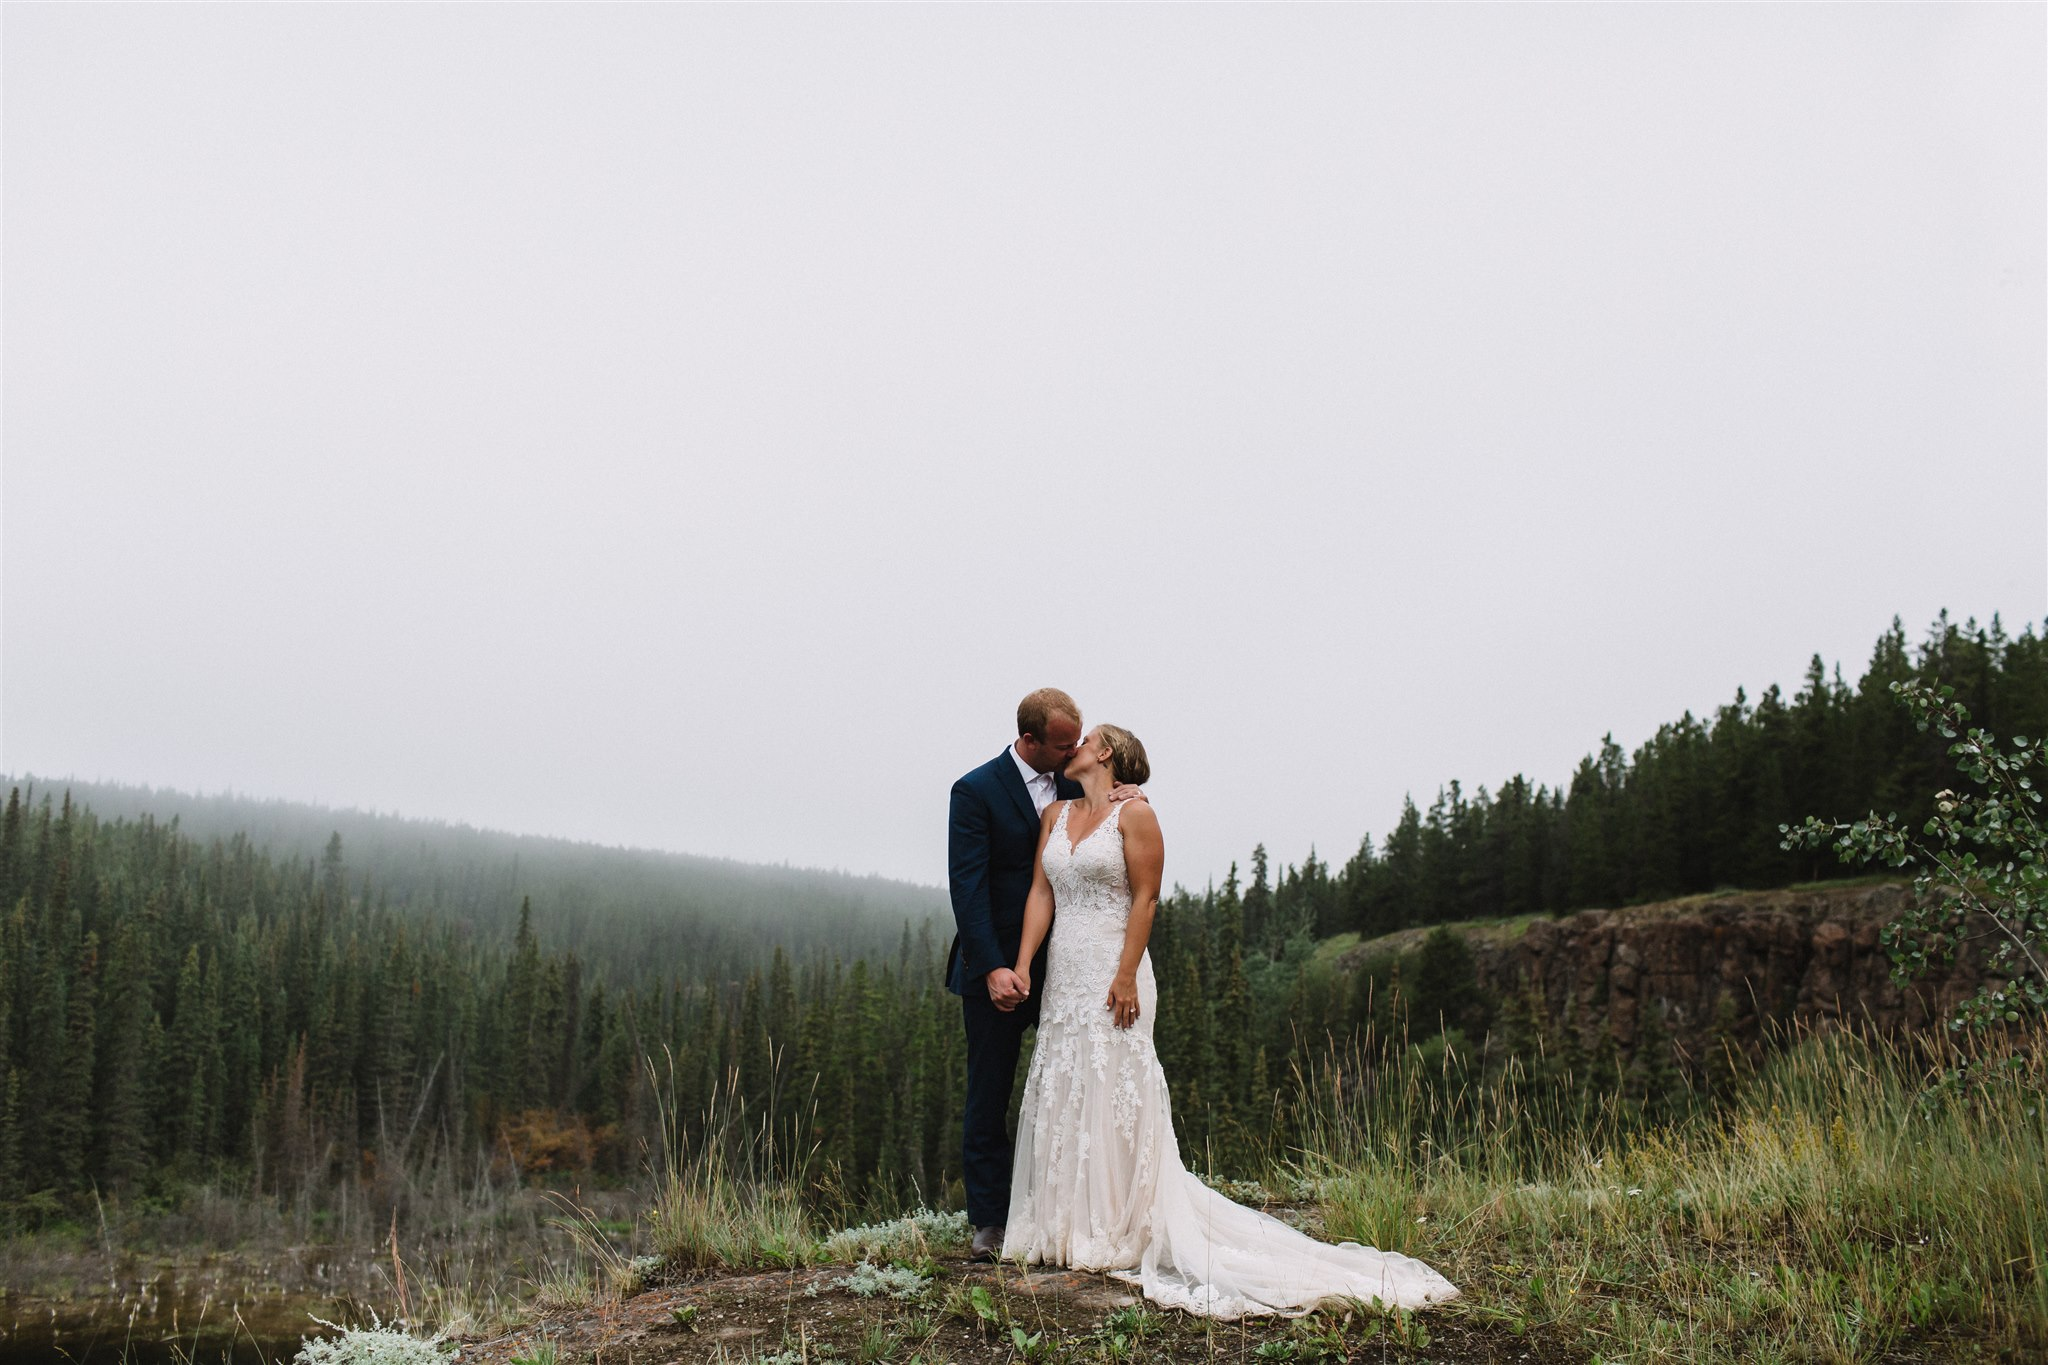 Foggy mountain elopement in Whitehorse, Yukon